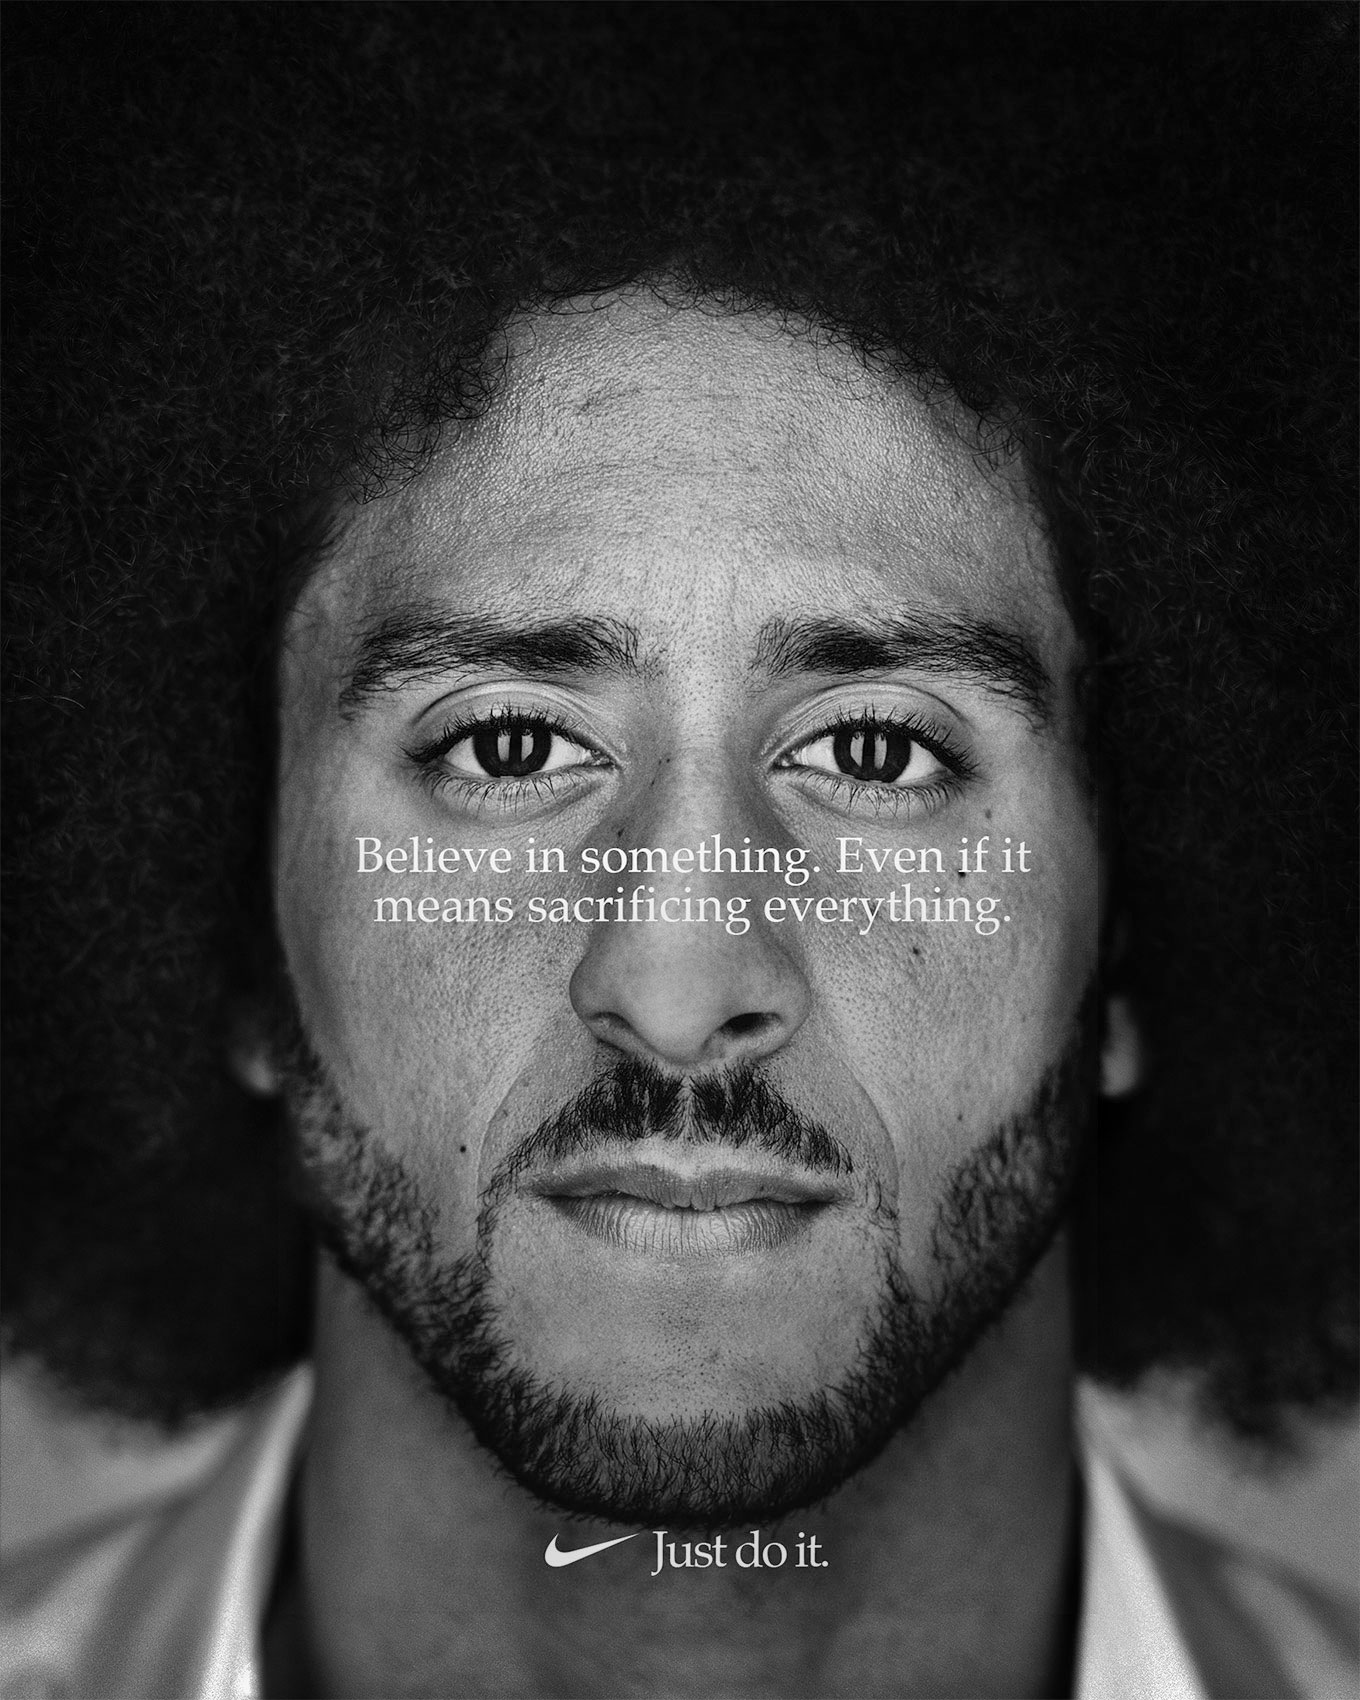 02_Kaepernick_Colin_3_FR1_F_1700_re